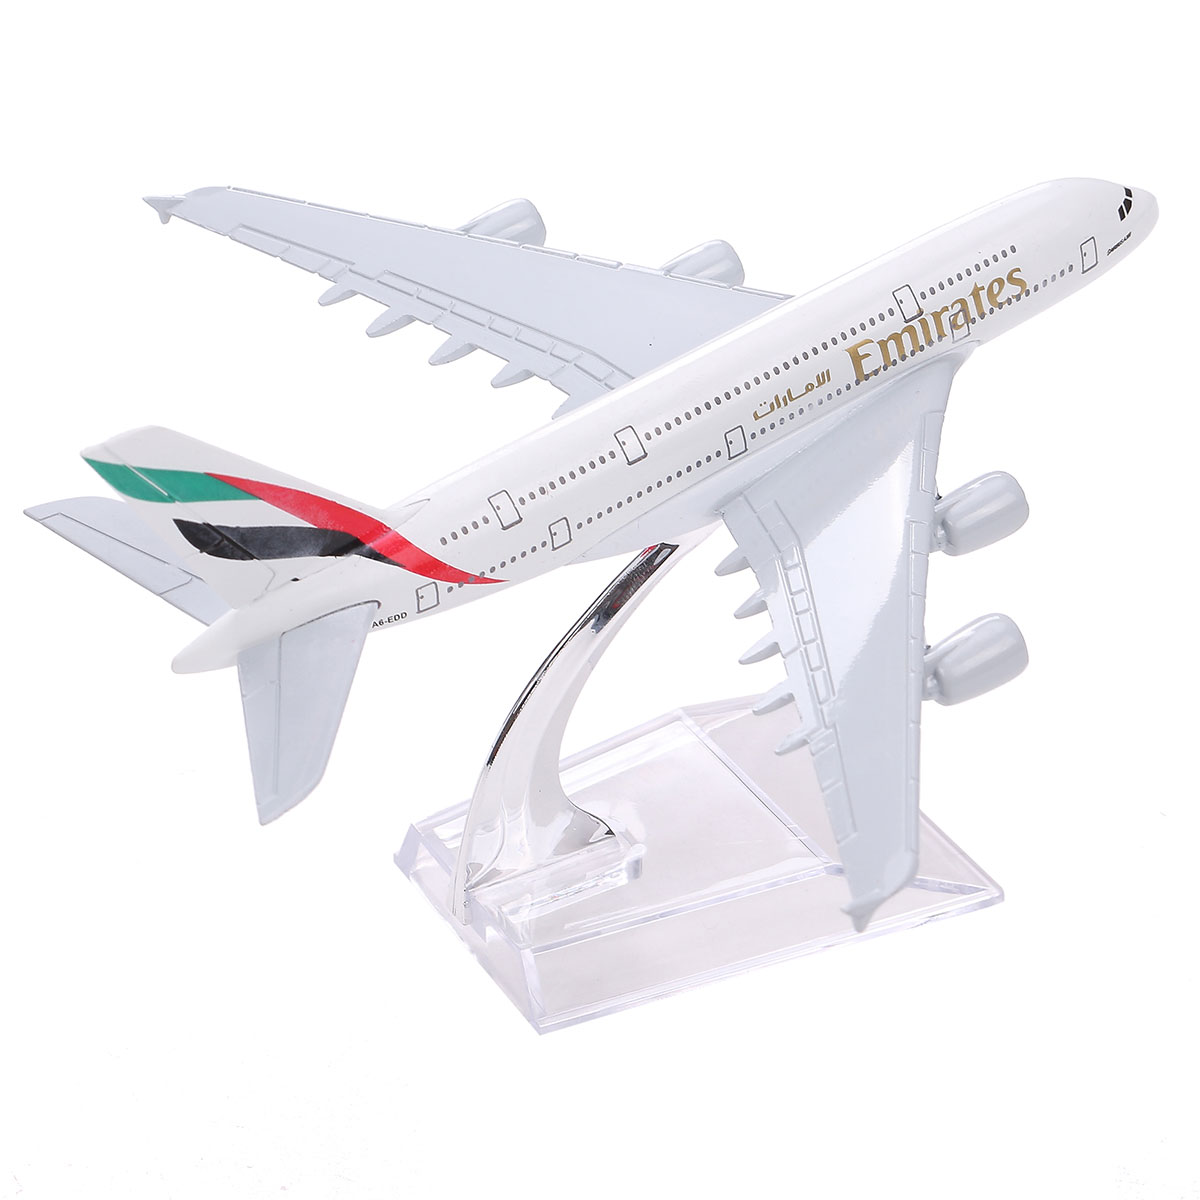 Brand New Airbus380 Emirates Airlines A-380 Aircraft Aeroplan 16cm Diecast Model United Arab Emirates A380 High Simulation(China (Mainland))